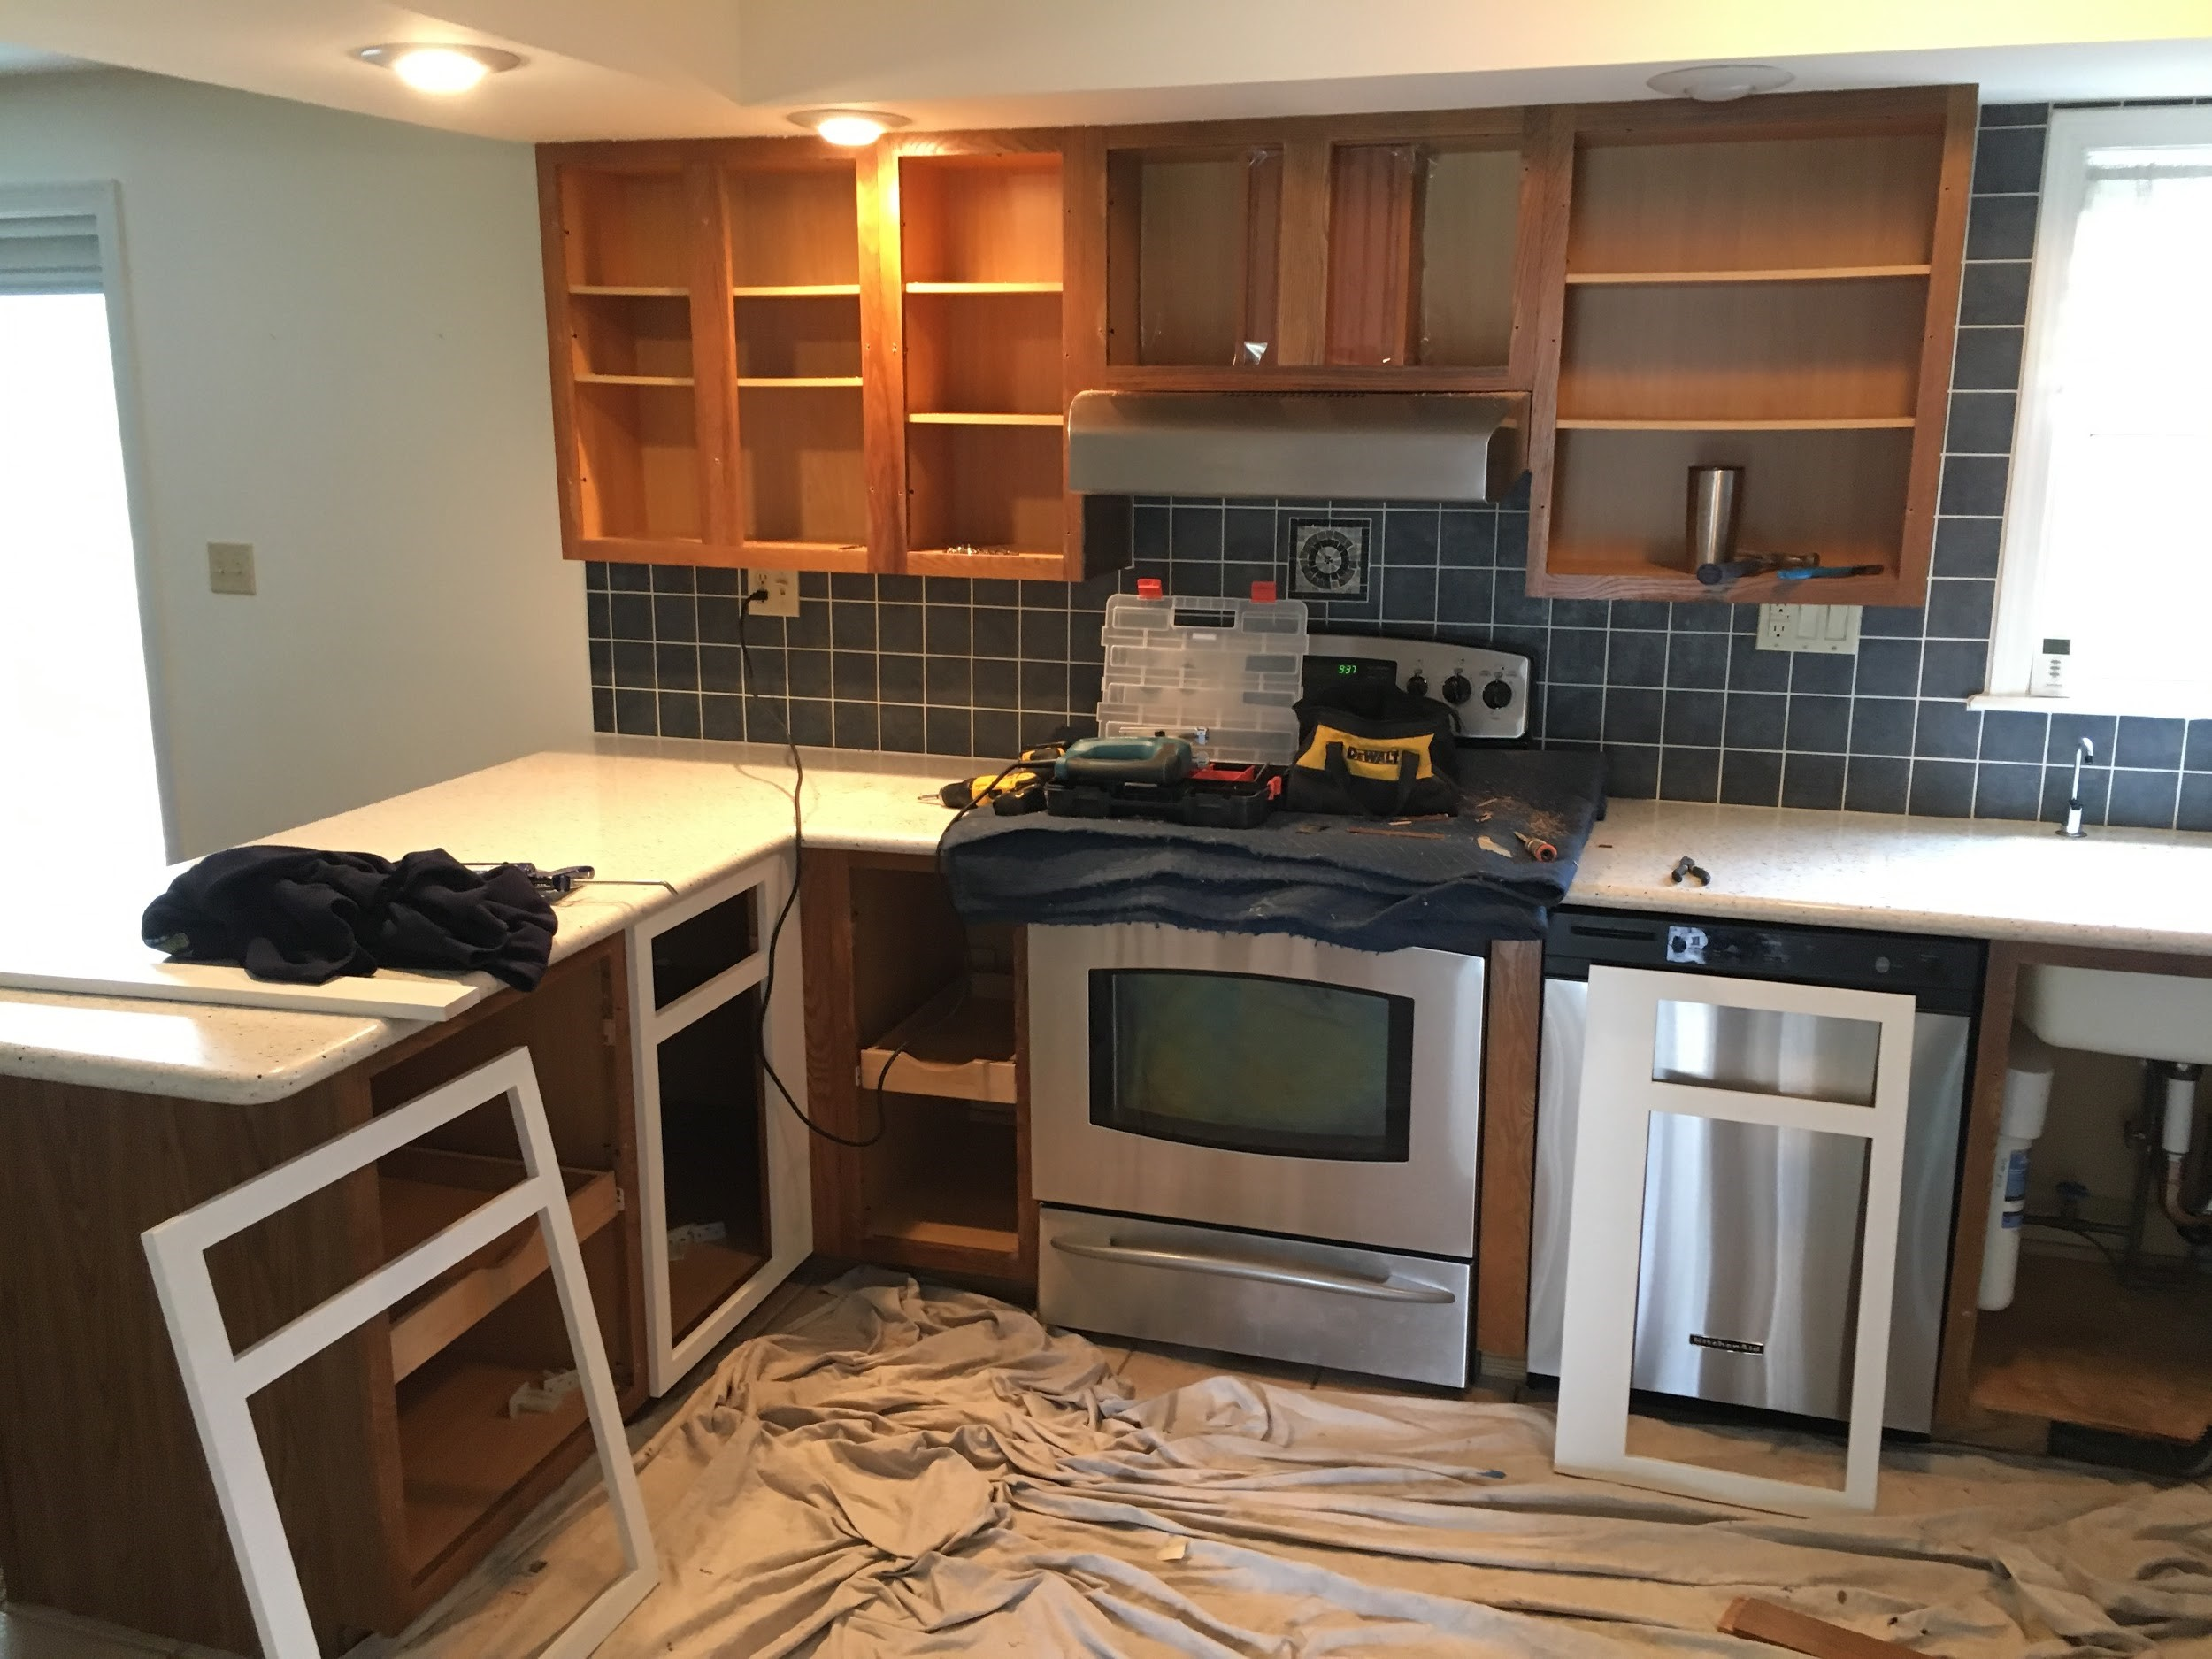 Kitchen Refacing Services in Bucks County, PA & Burlington County ...